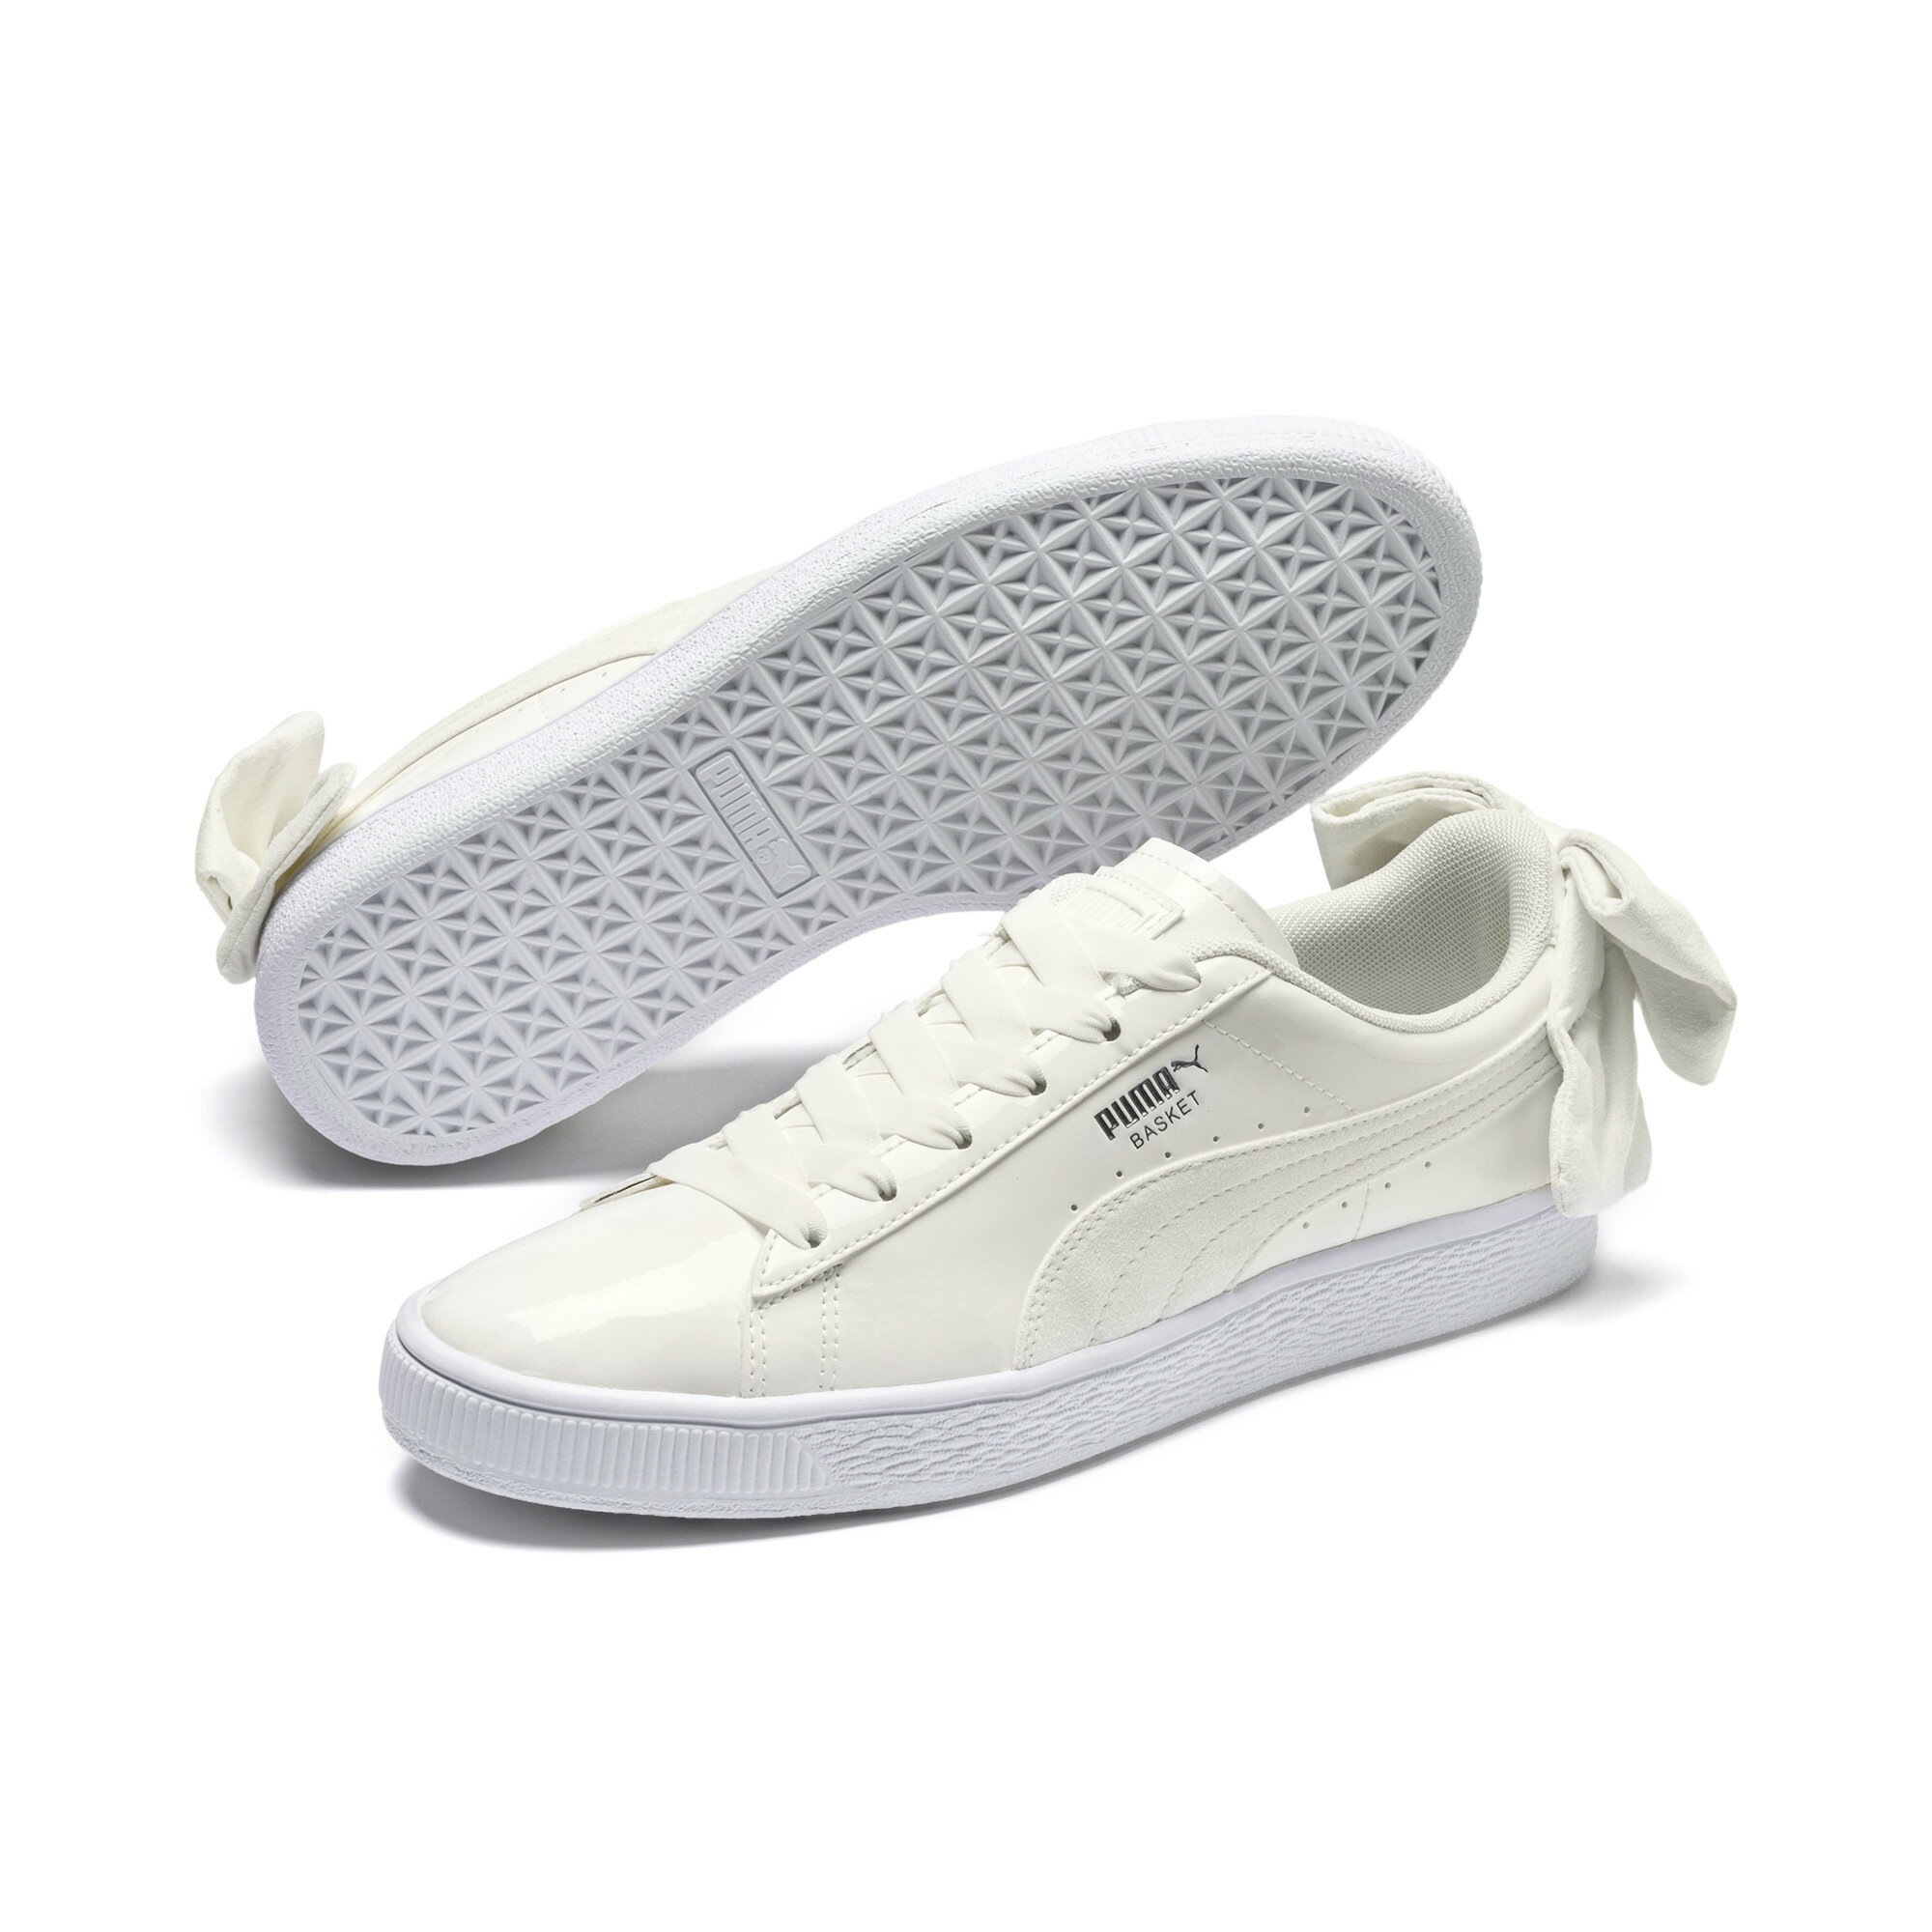 Official Puma Store  PUMA Basket Suede Bow Women s Sneakers ... abc18b7b40